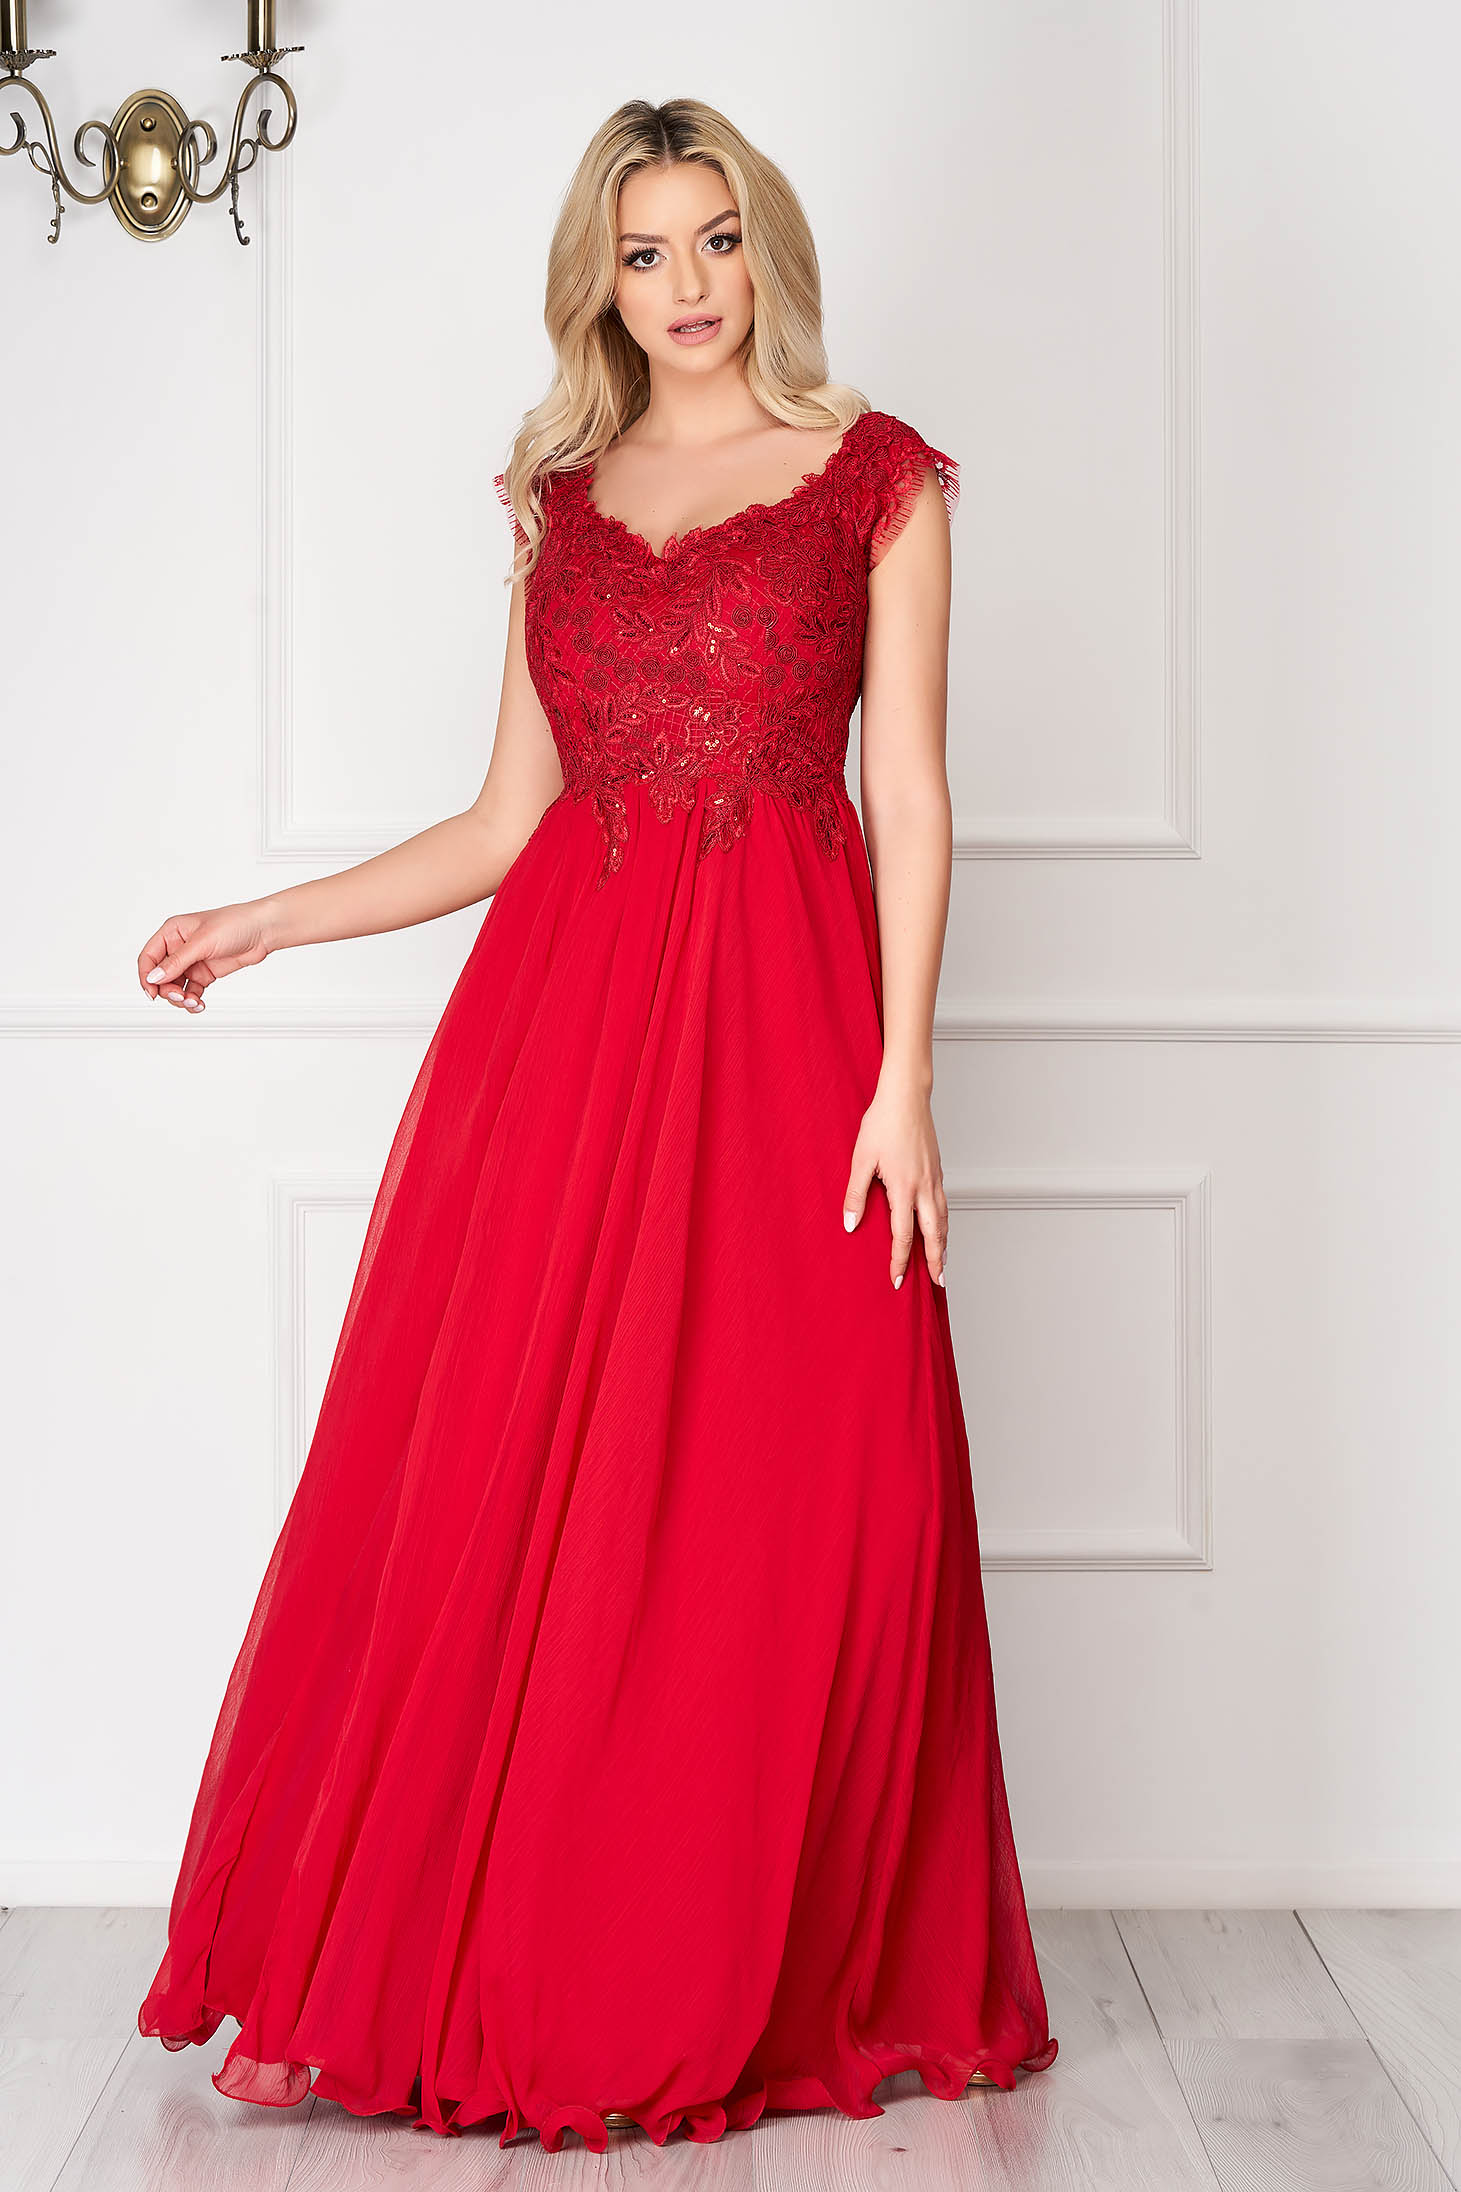 Burgundy dress long occasional cloche from veil fabric cut material lace and sequins details